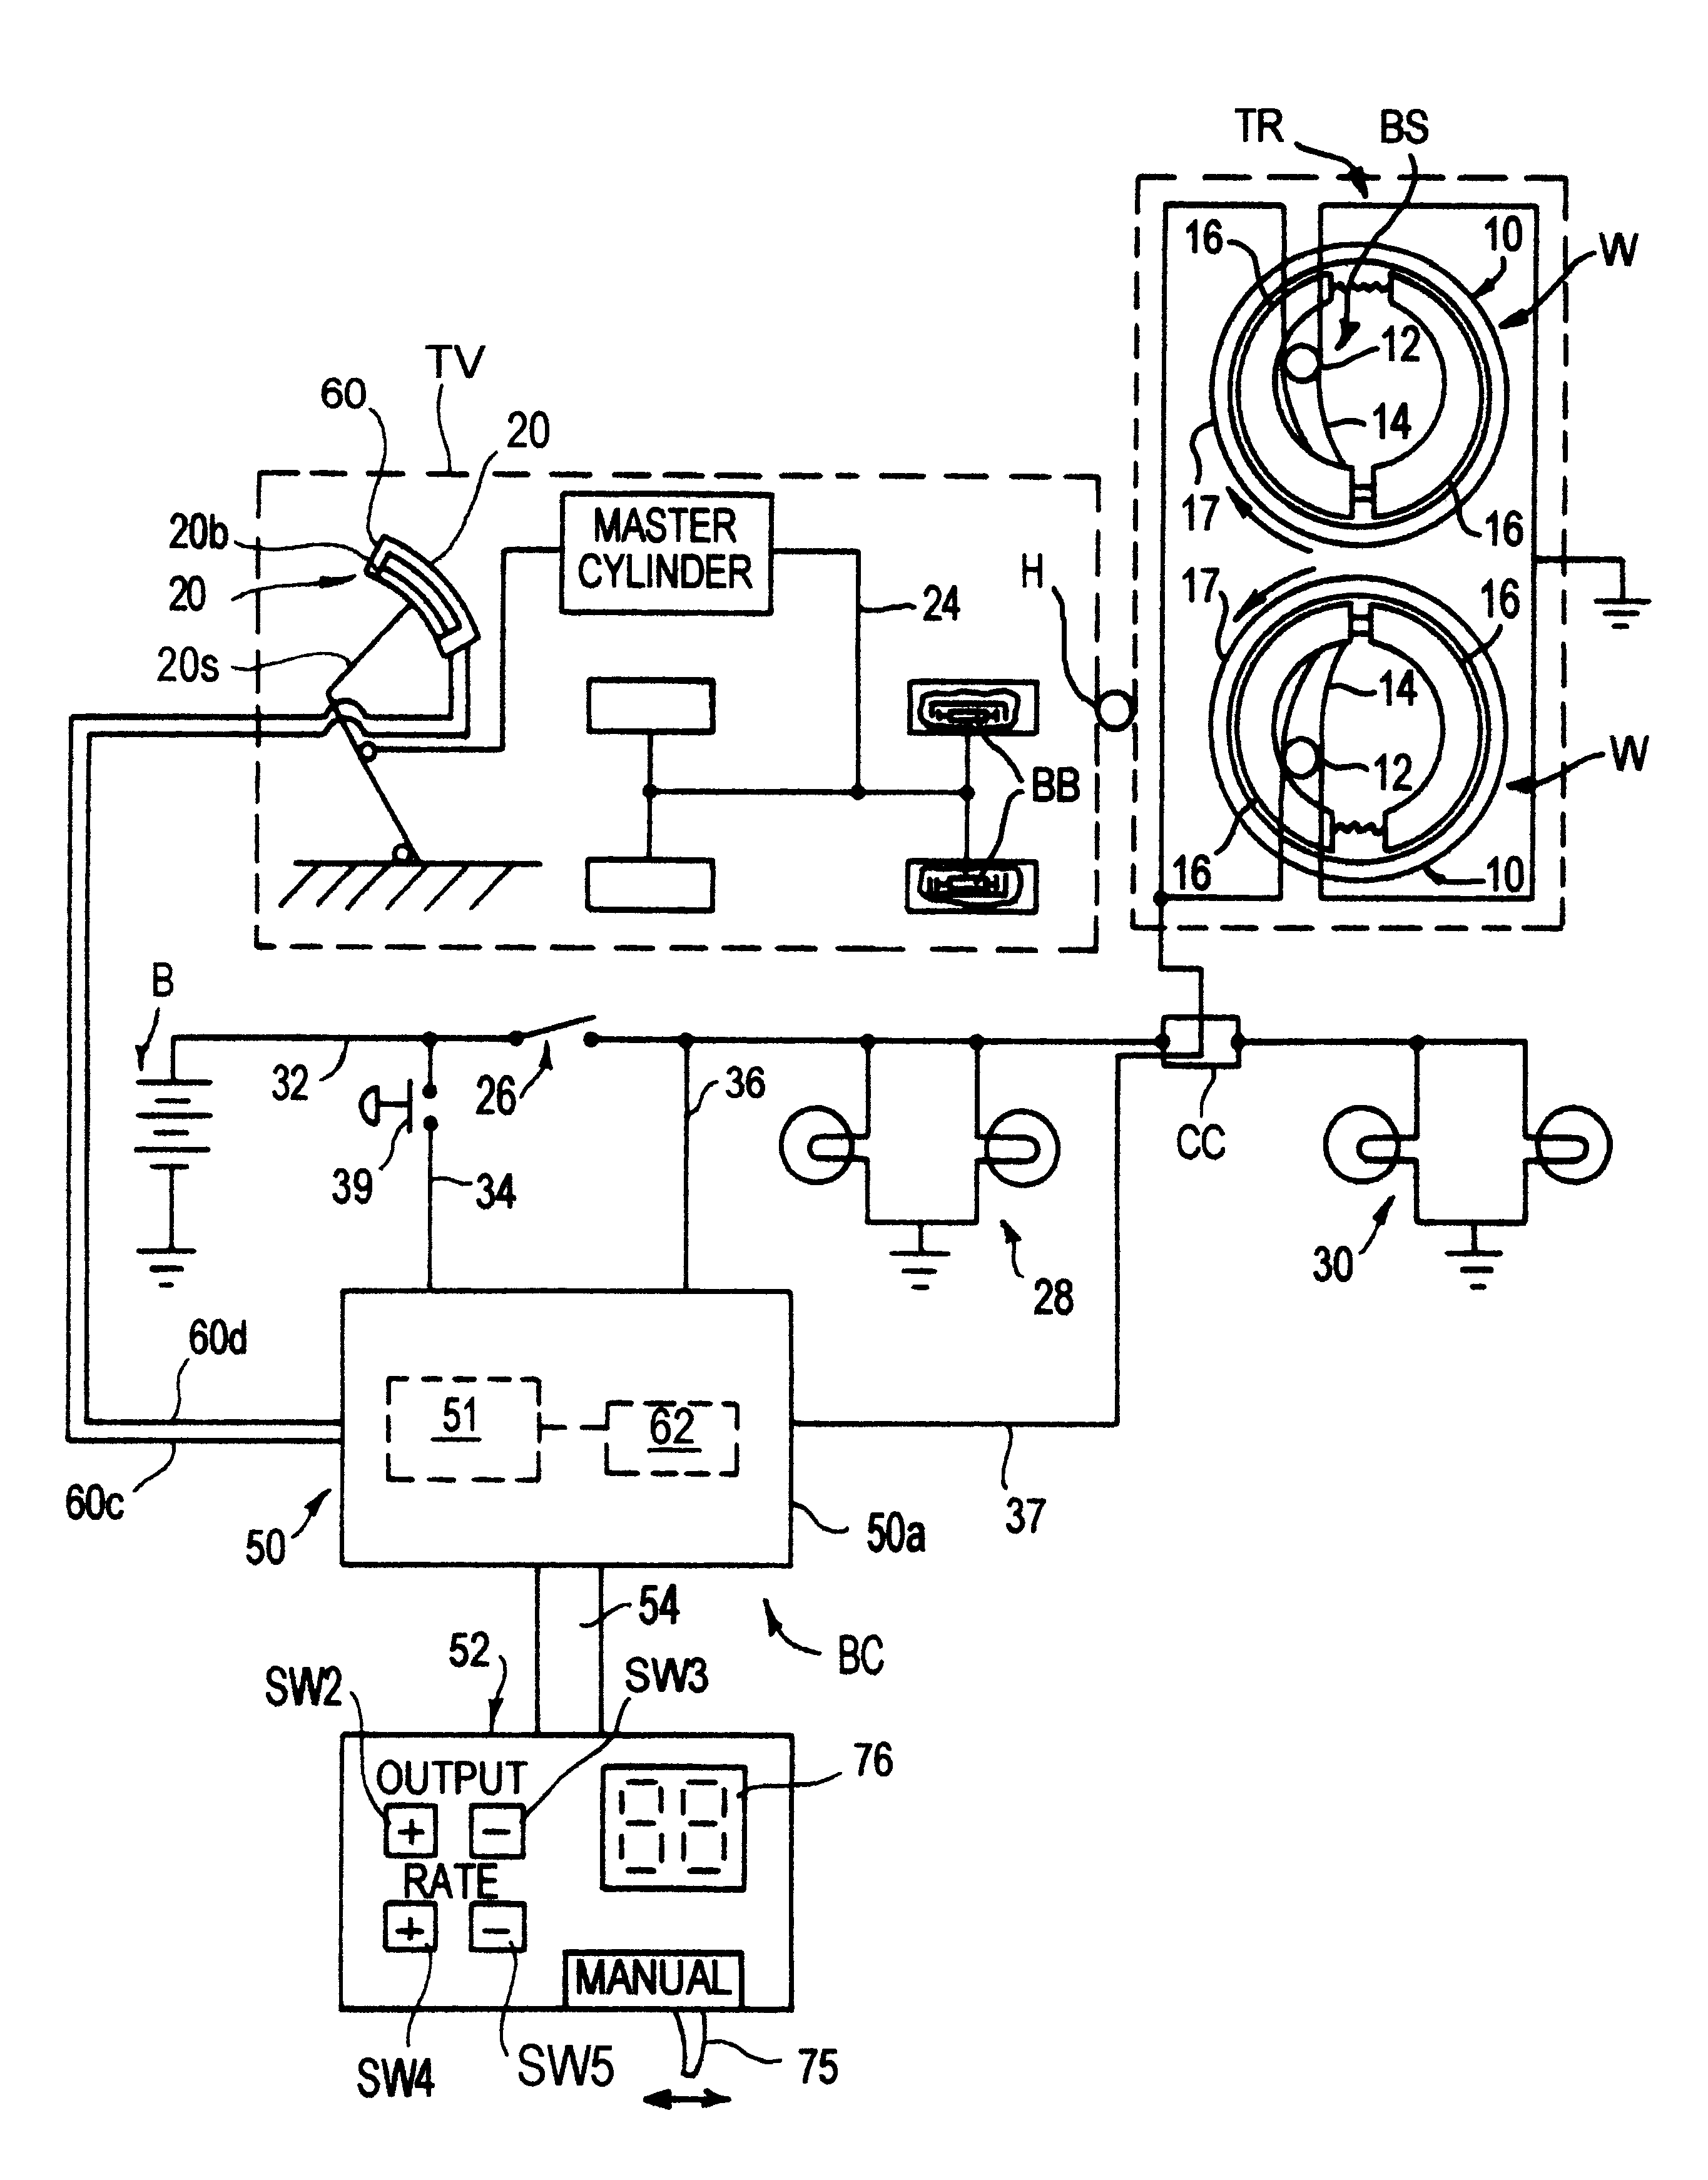 Analytics For Us Patent No 6179390 Electronic Trailer Brake Controller Wire Leads To Provide Additional Functions Such As Powering Wiring Harness A Main Control Unit That Is Attached The Vehicle Hidden Out Of Sight And Hard Wired Electrical System